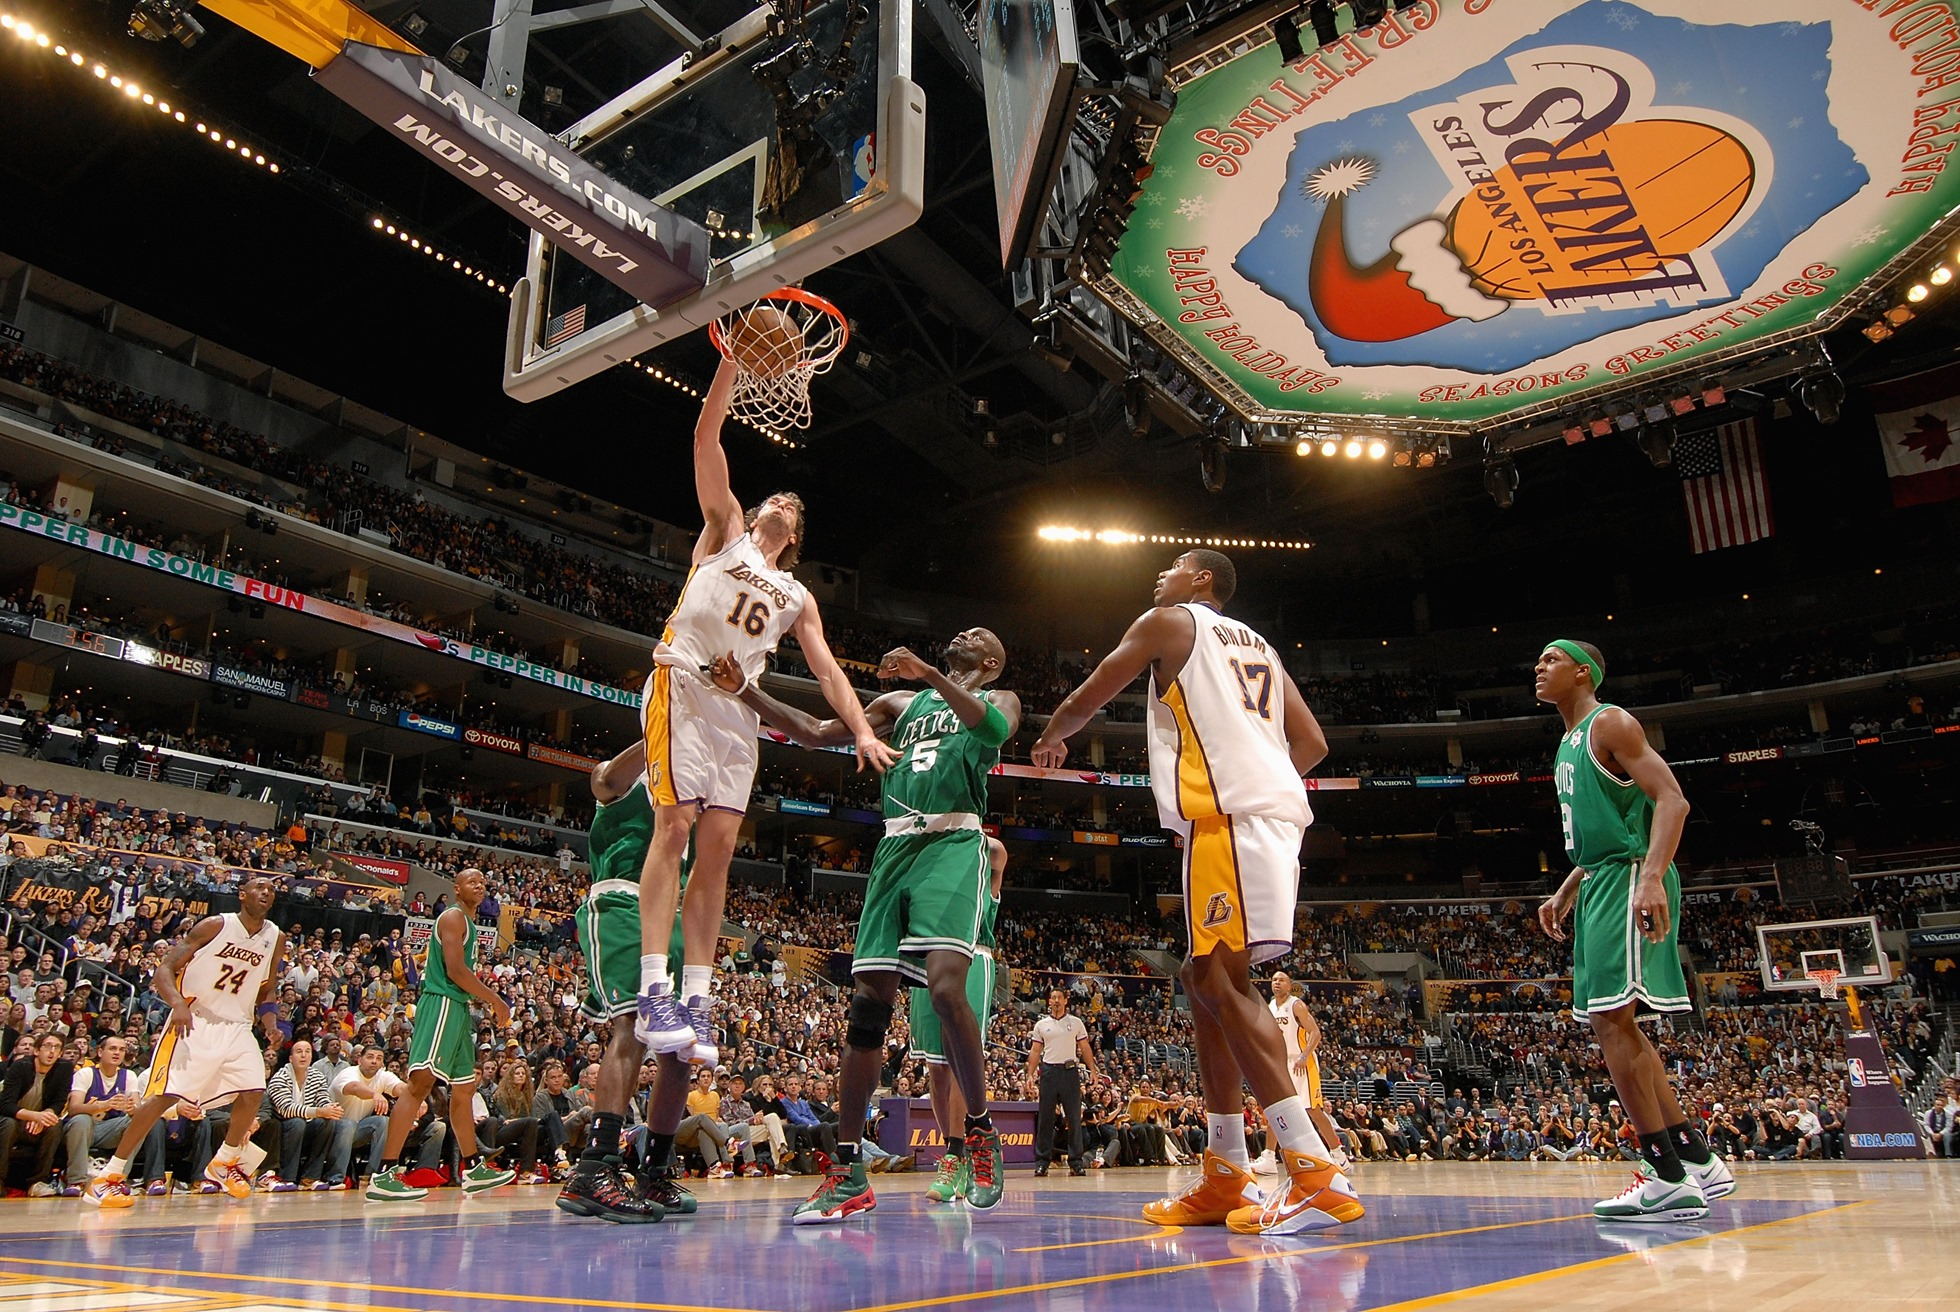 pau_gasol_dunk_on_2010_finals_game_7